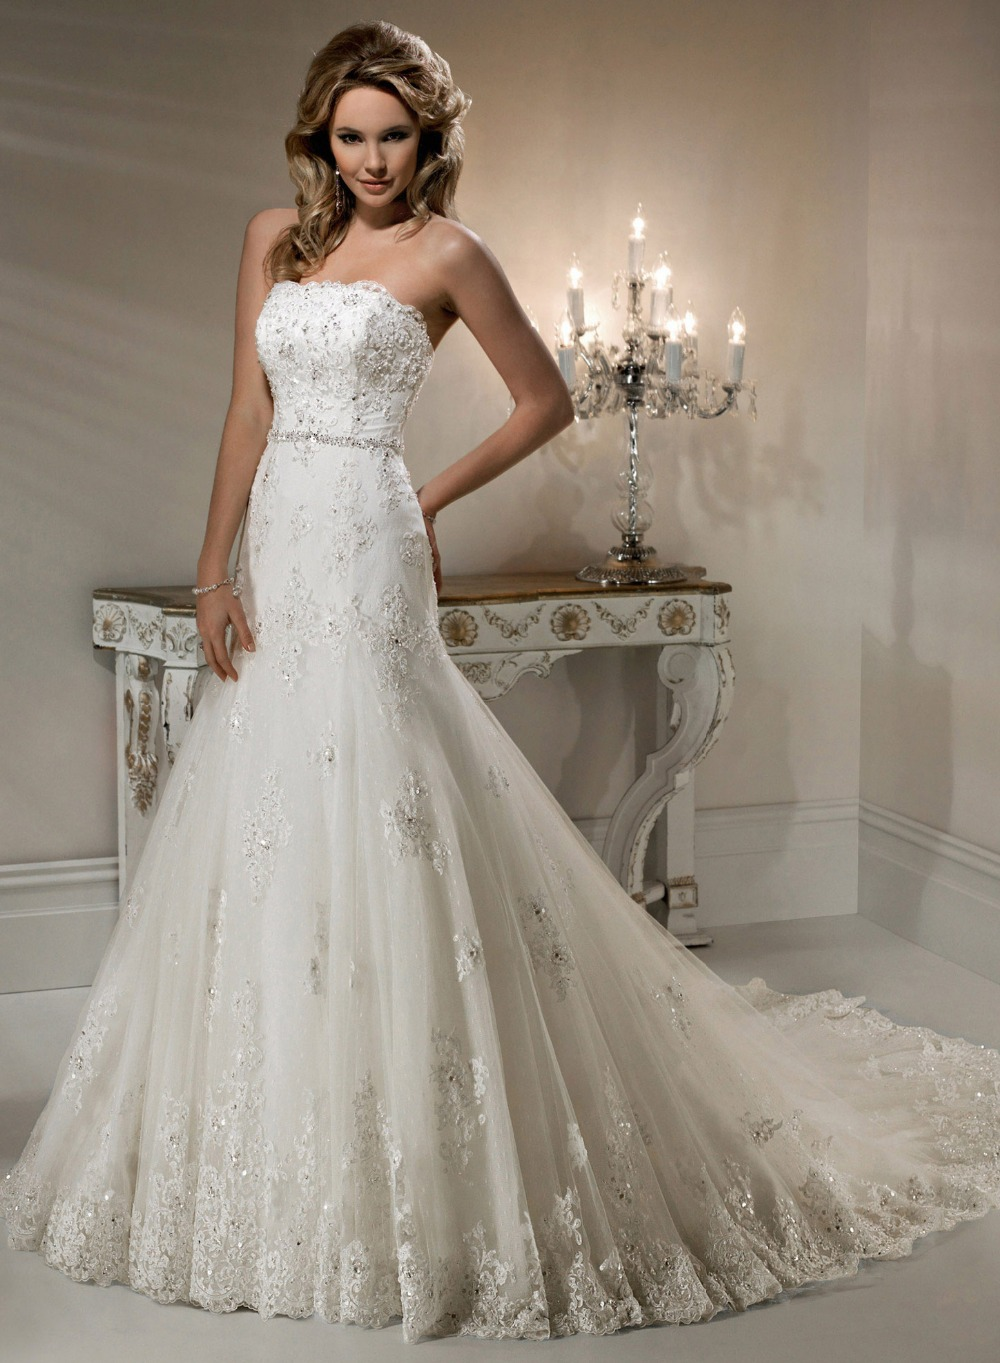 Wedding dresses yw010 hot sale new elegant mermaid bridal for Wedding dresses sale online